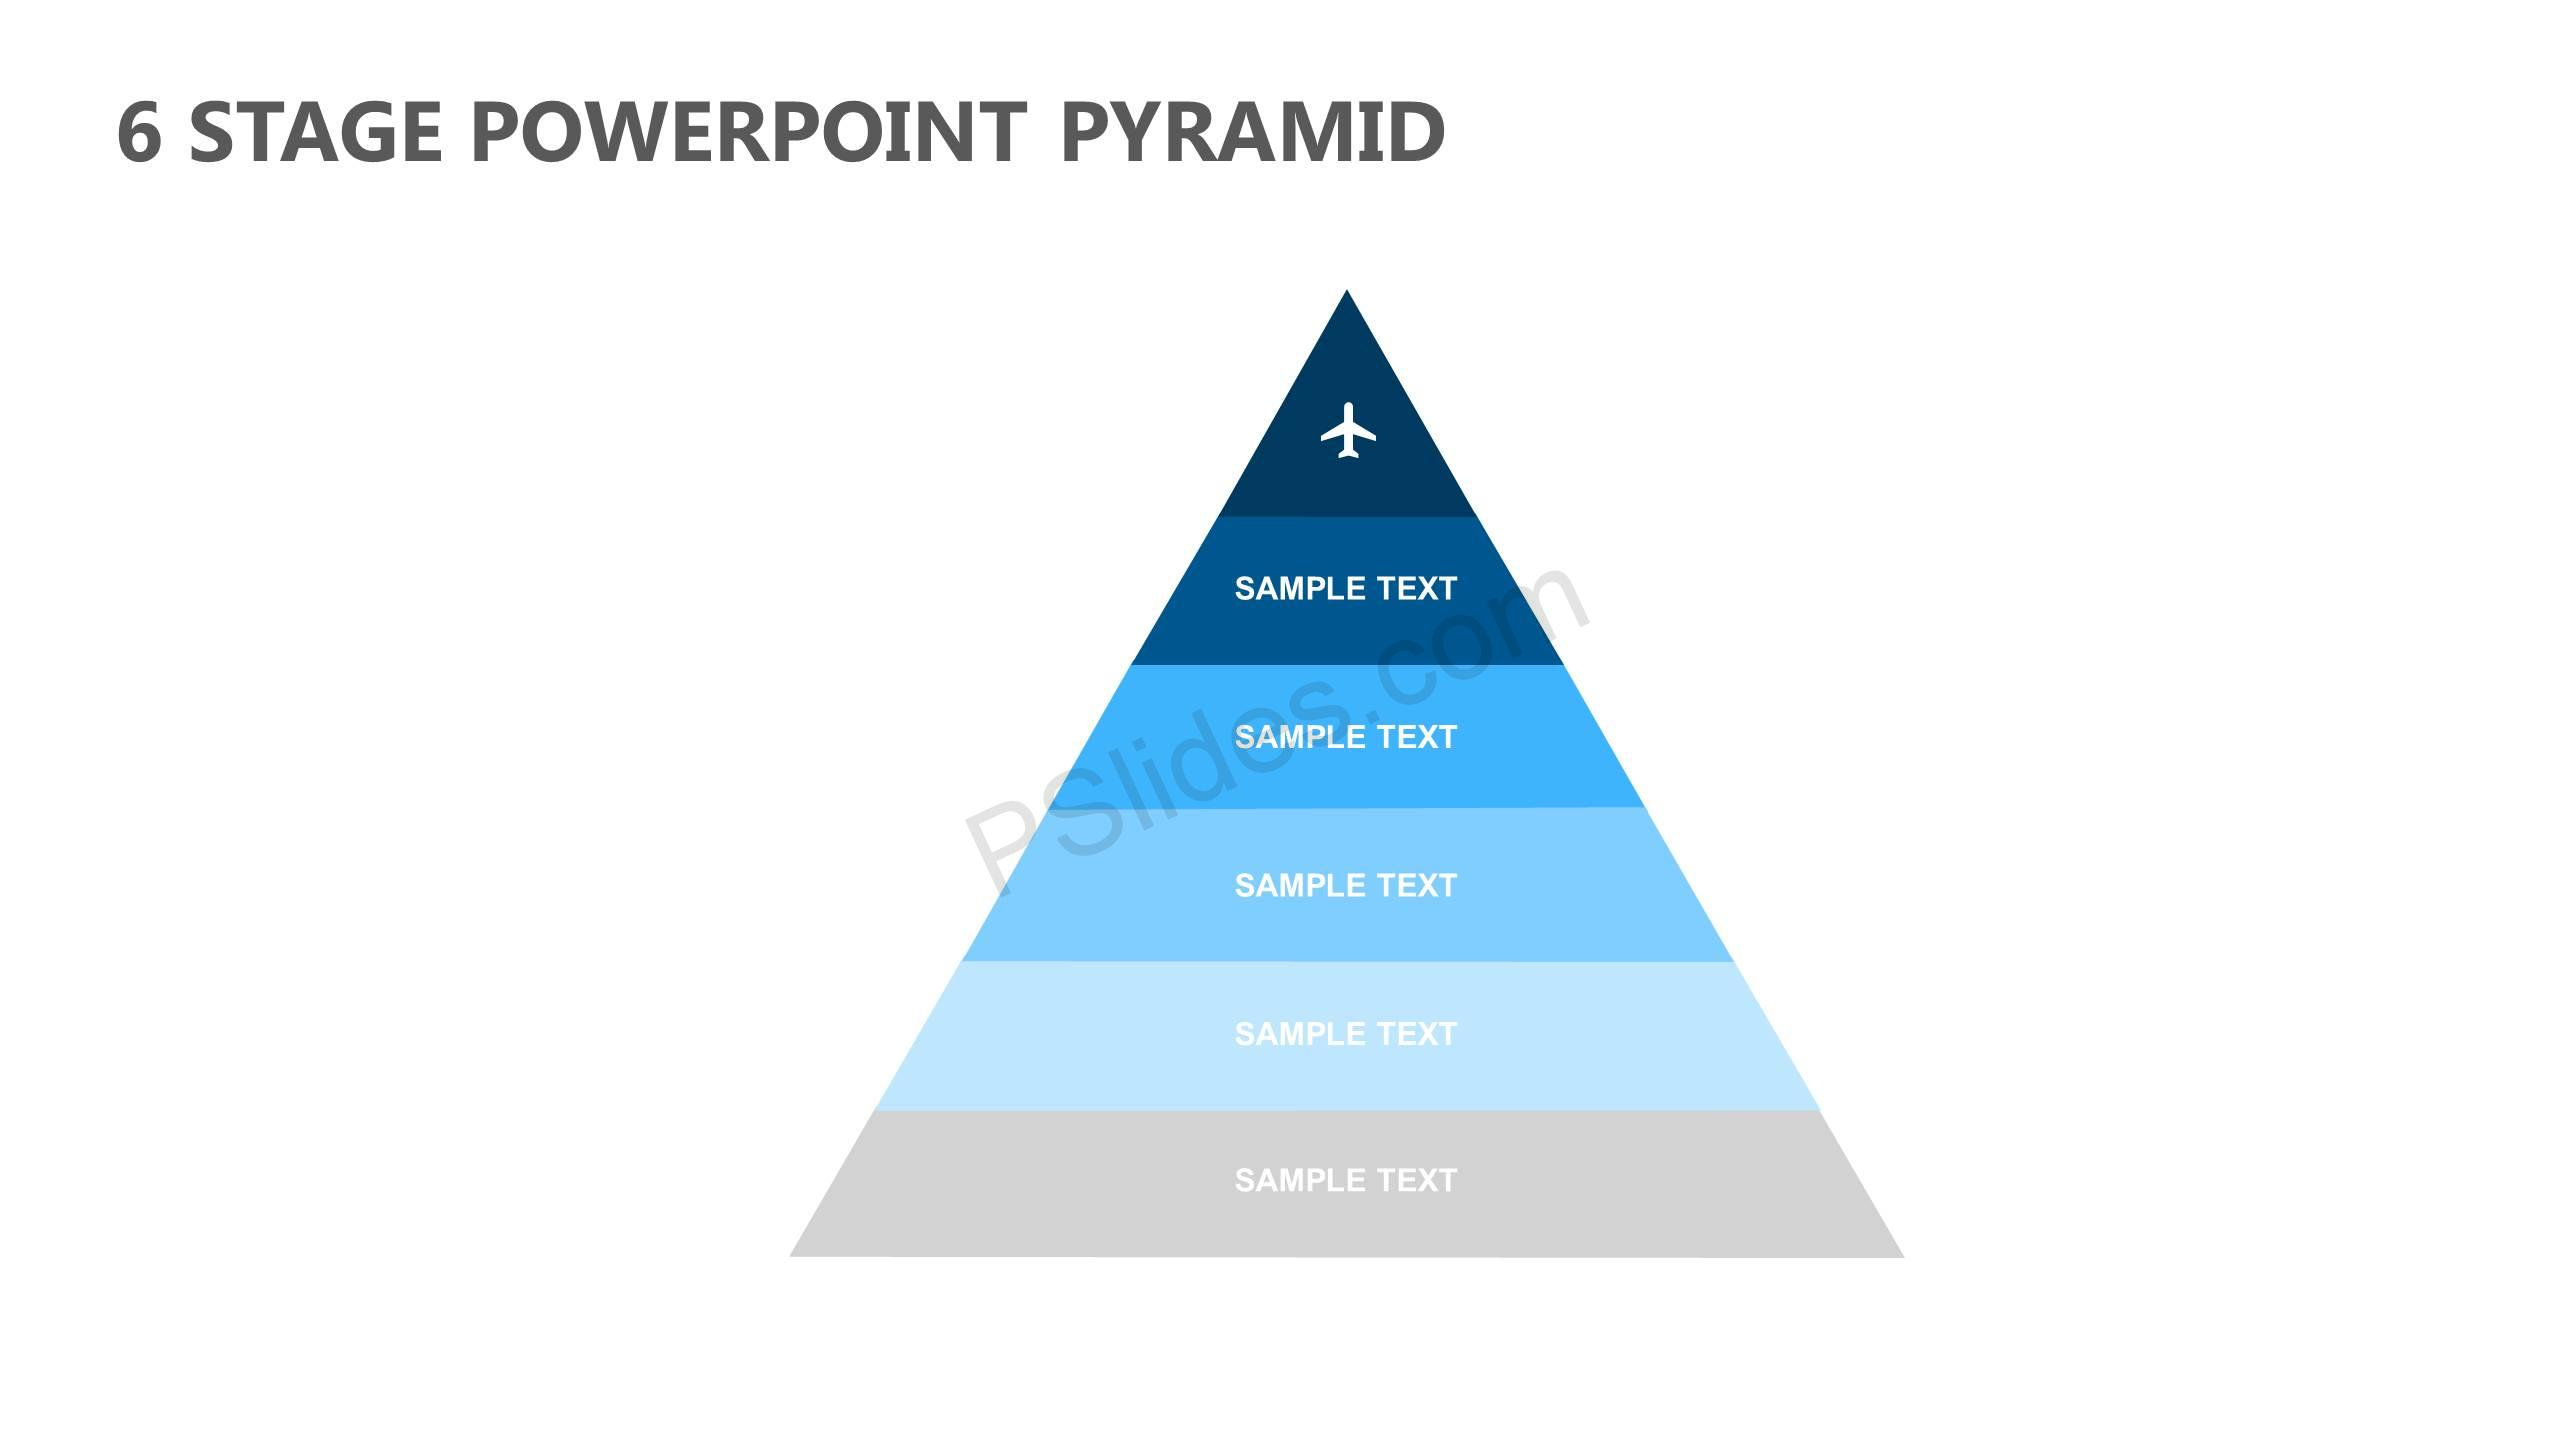 6 stage powerpoint pyramid pslides